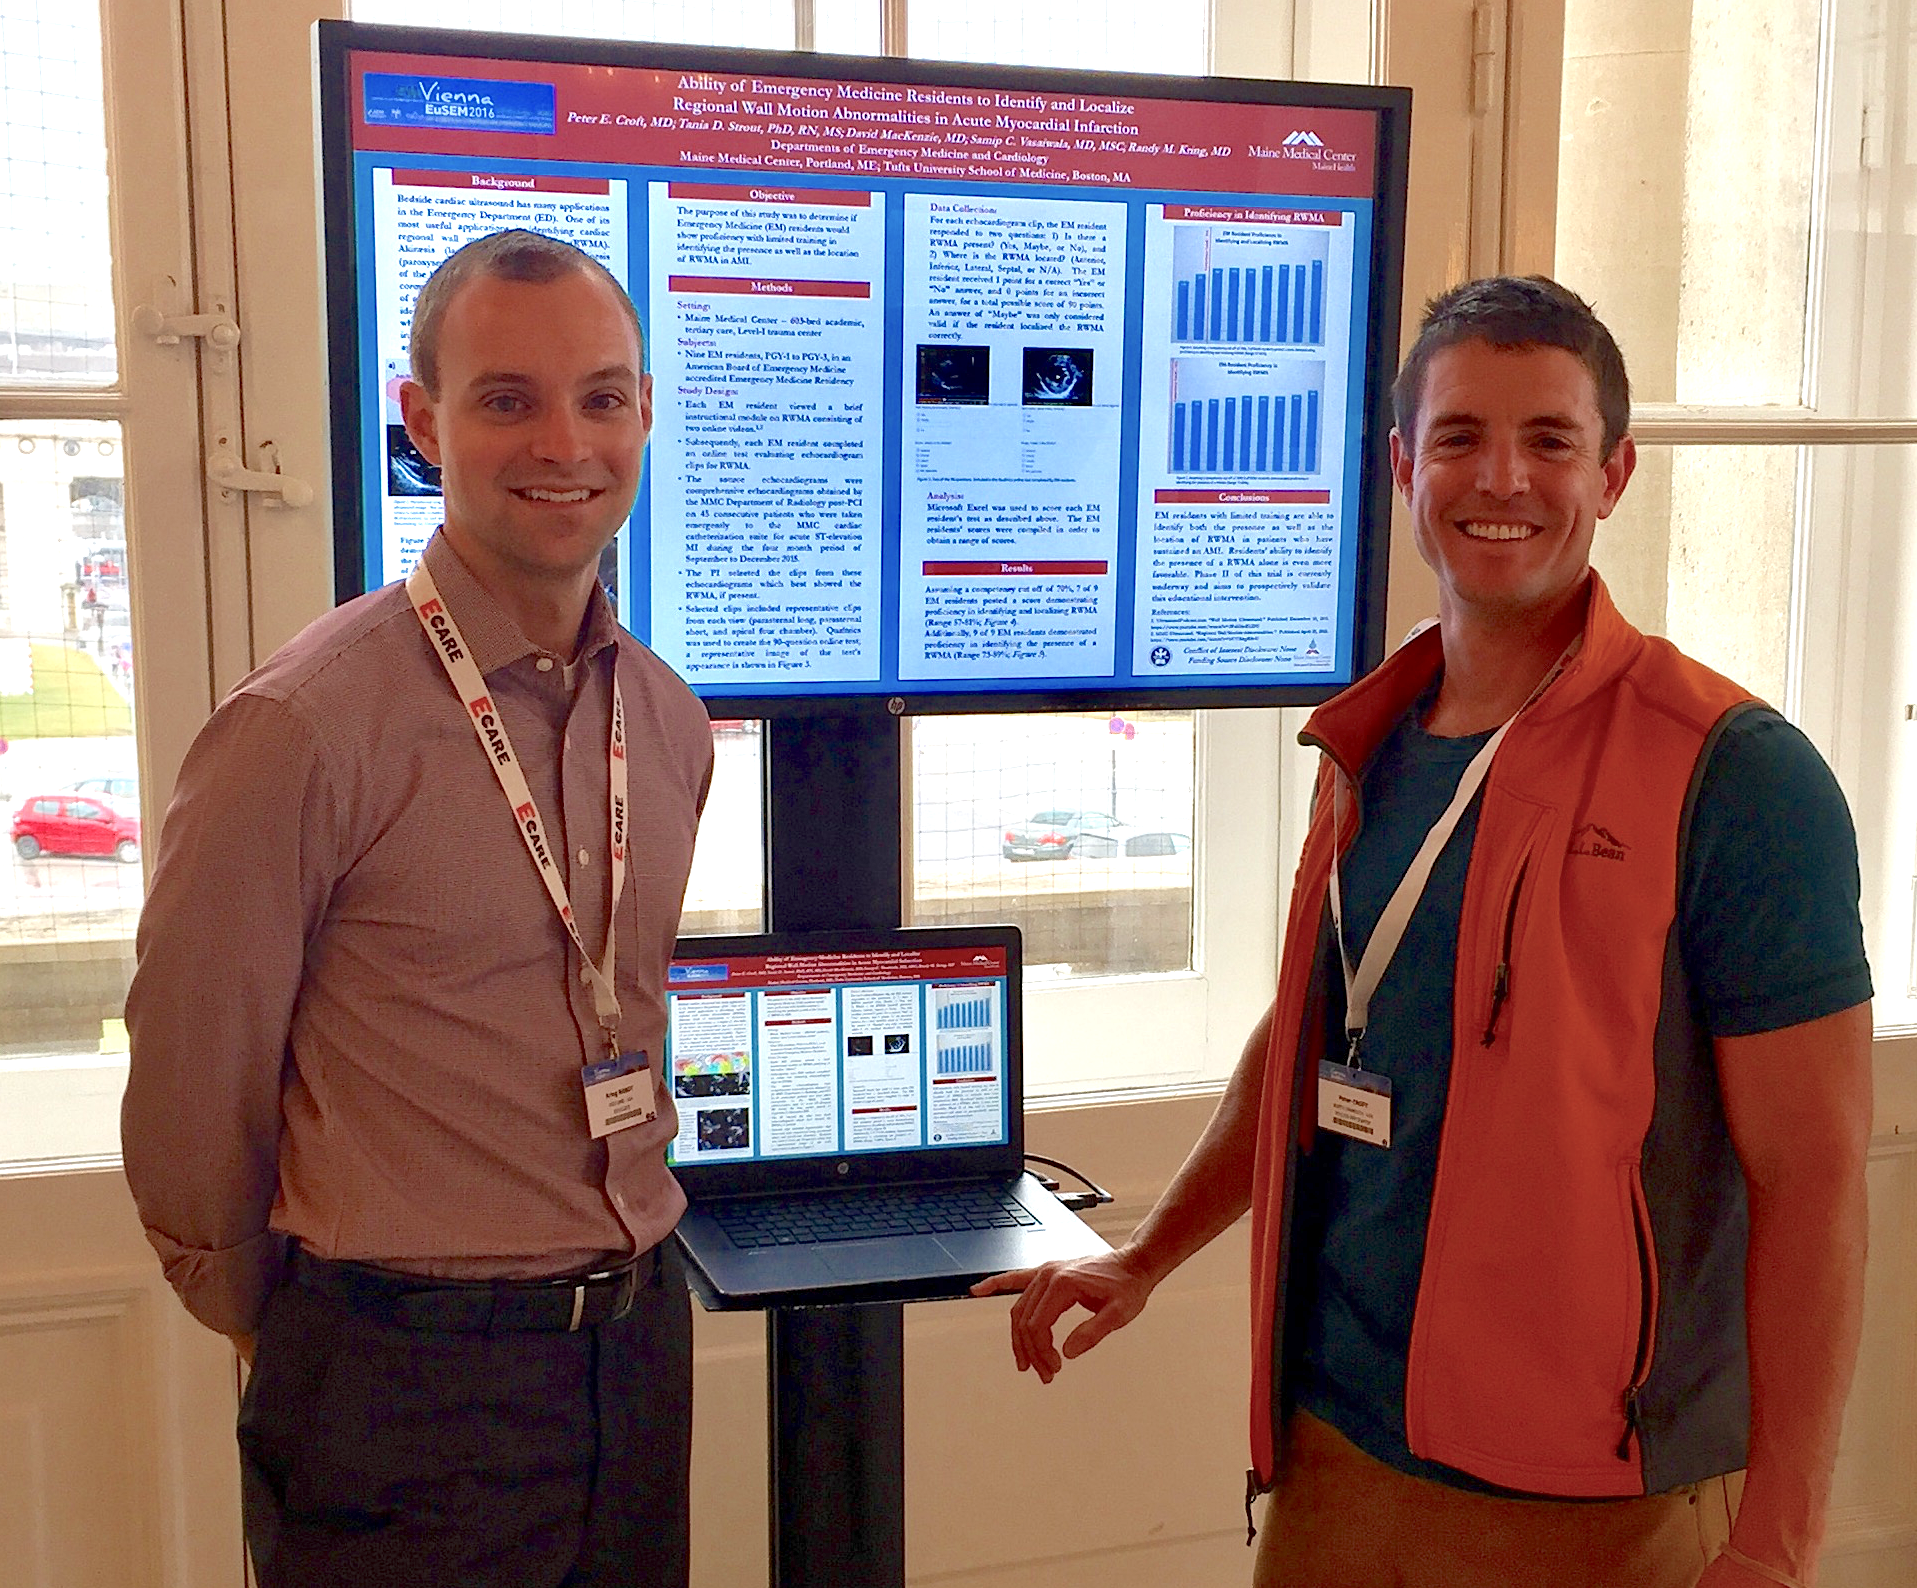 Dr. Kring and Dr. Croft presenting at EuSEM 2016: European Congress on Emergency Medicine in Vienna, Austria